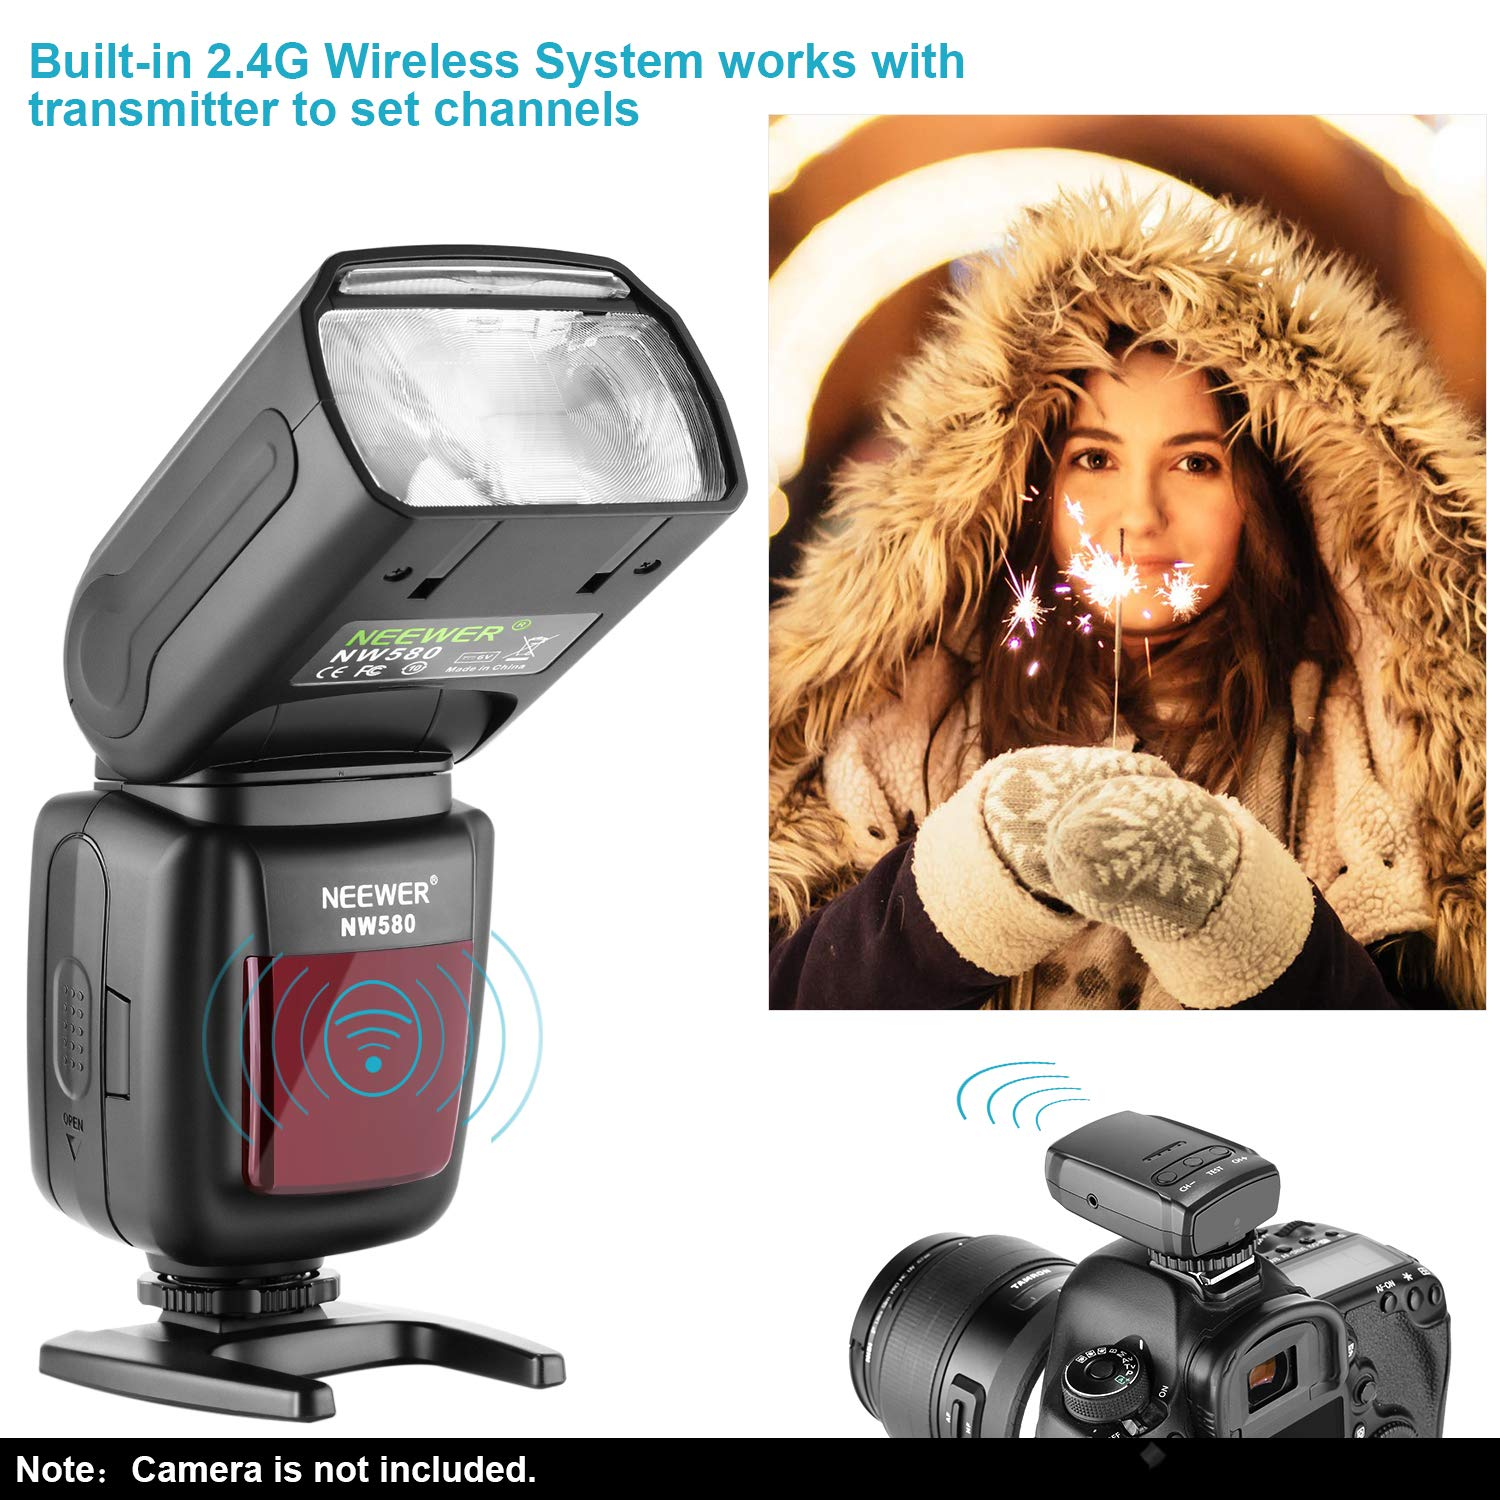 NW580 Neewer Wireless Flash Speedlite for Canon Nikon Sony Panasonic Olympus Fujifilm and Other DSLR Cameras with Standard Hot Shoe with LCD Display 2.4G Wireless System and 15 Channel Transmitter